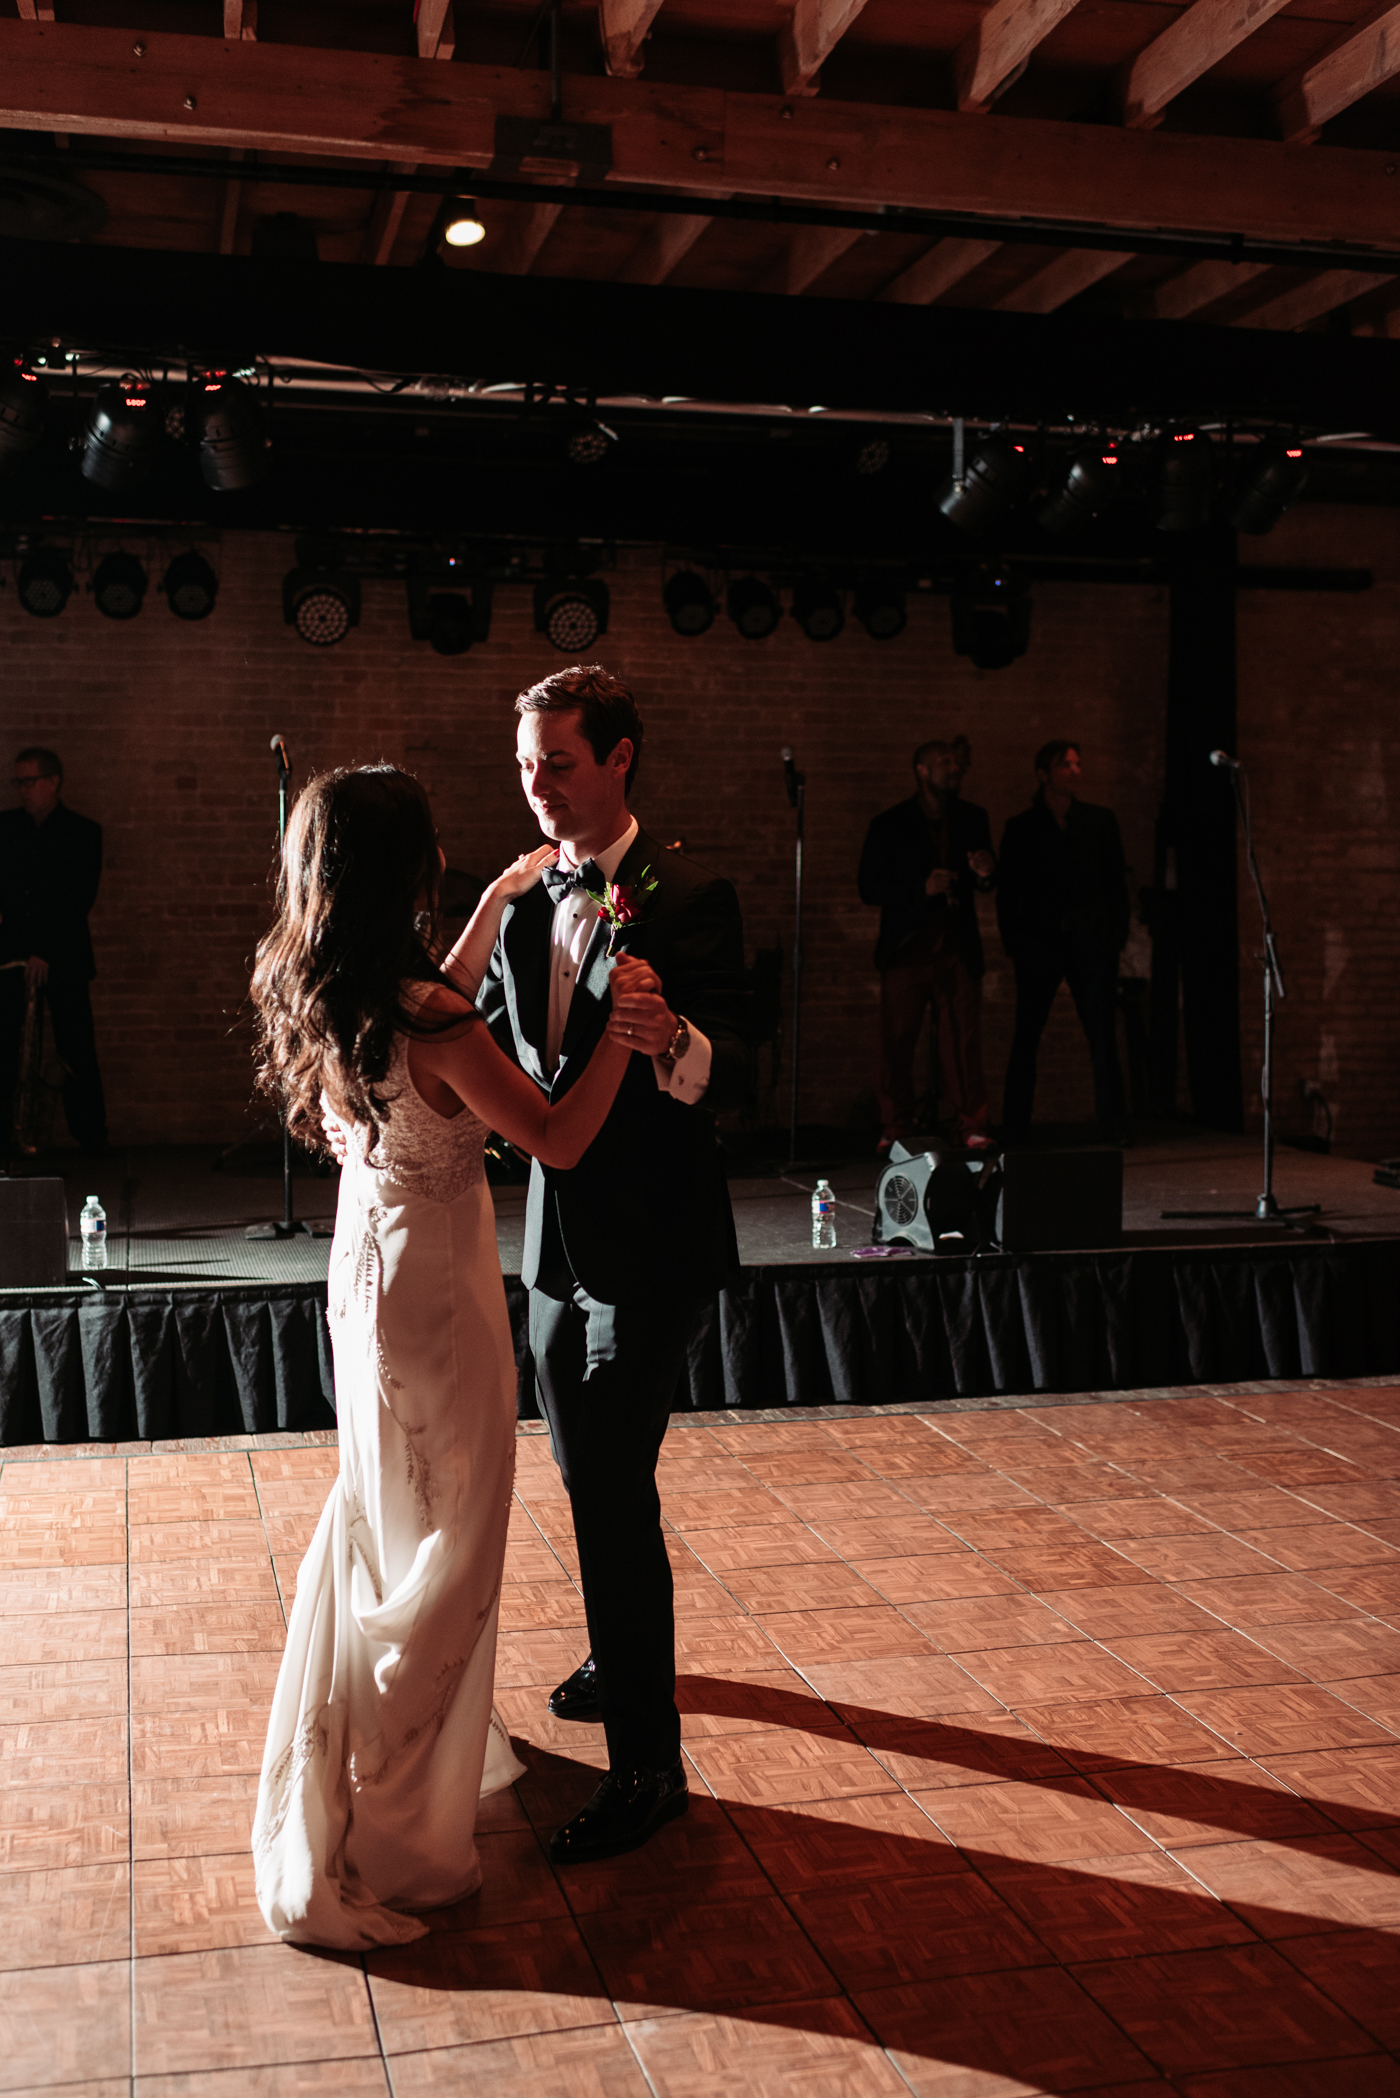 austin.wedding.bbp (97 of 125).jpg